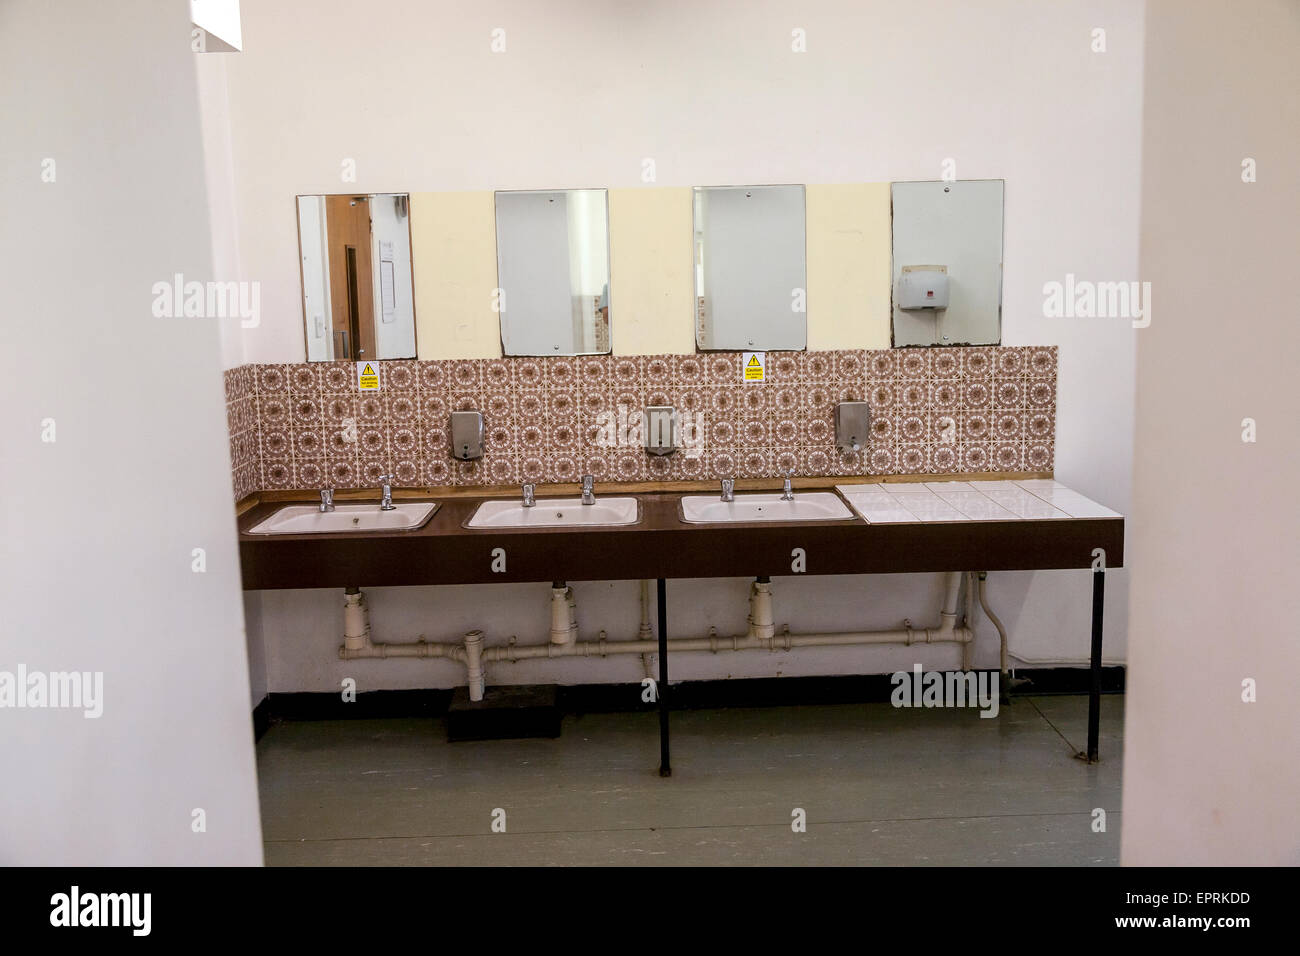 Public Restroom Dirty Old Toilet House Indoors Messy BrokenRun-Down Old-fashionedHome Interior Abandoned  Damaged - Stock Image